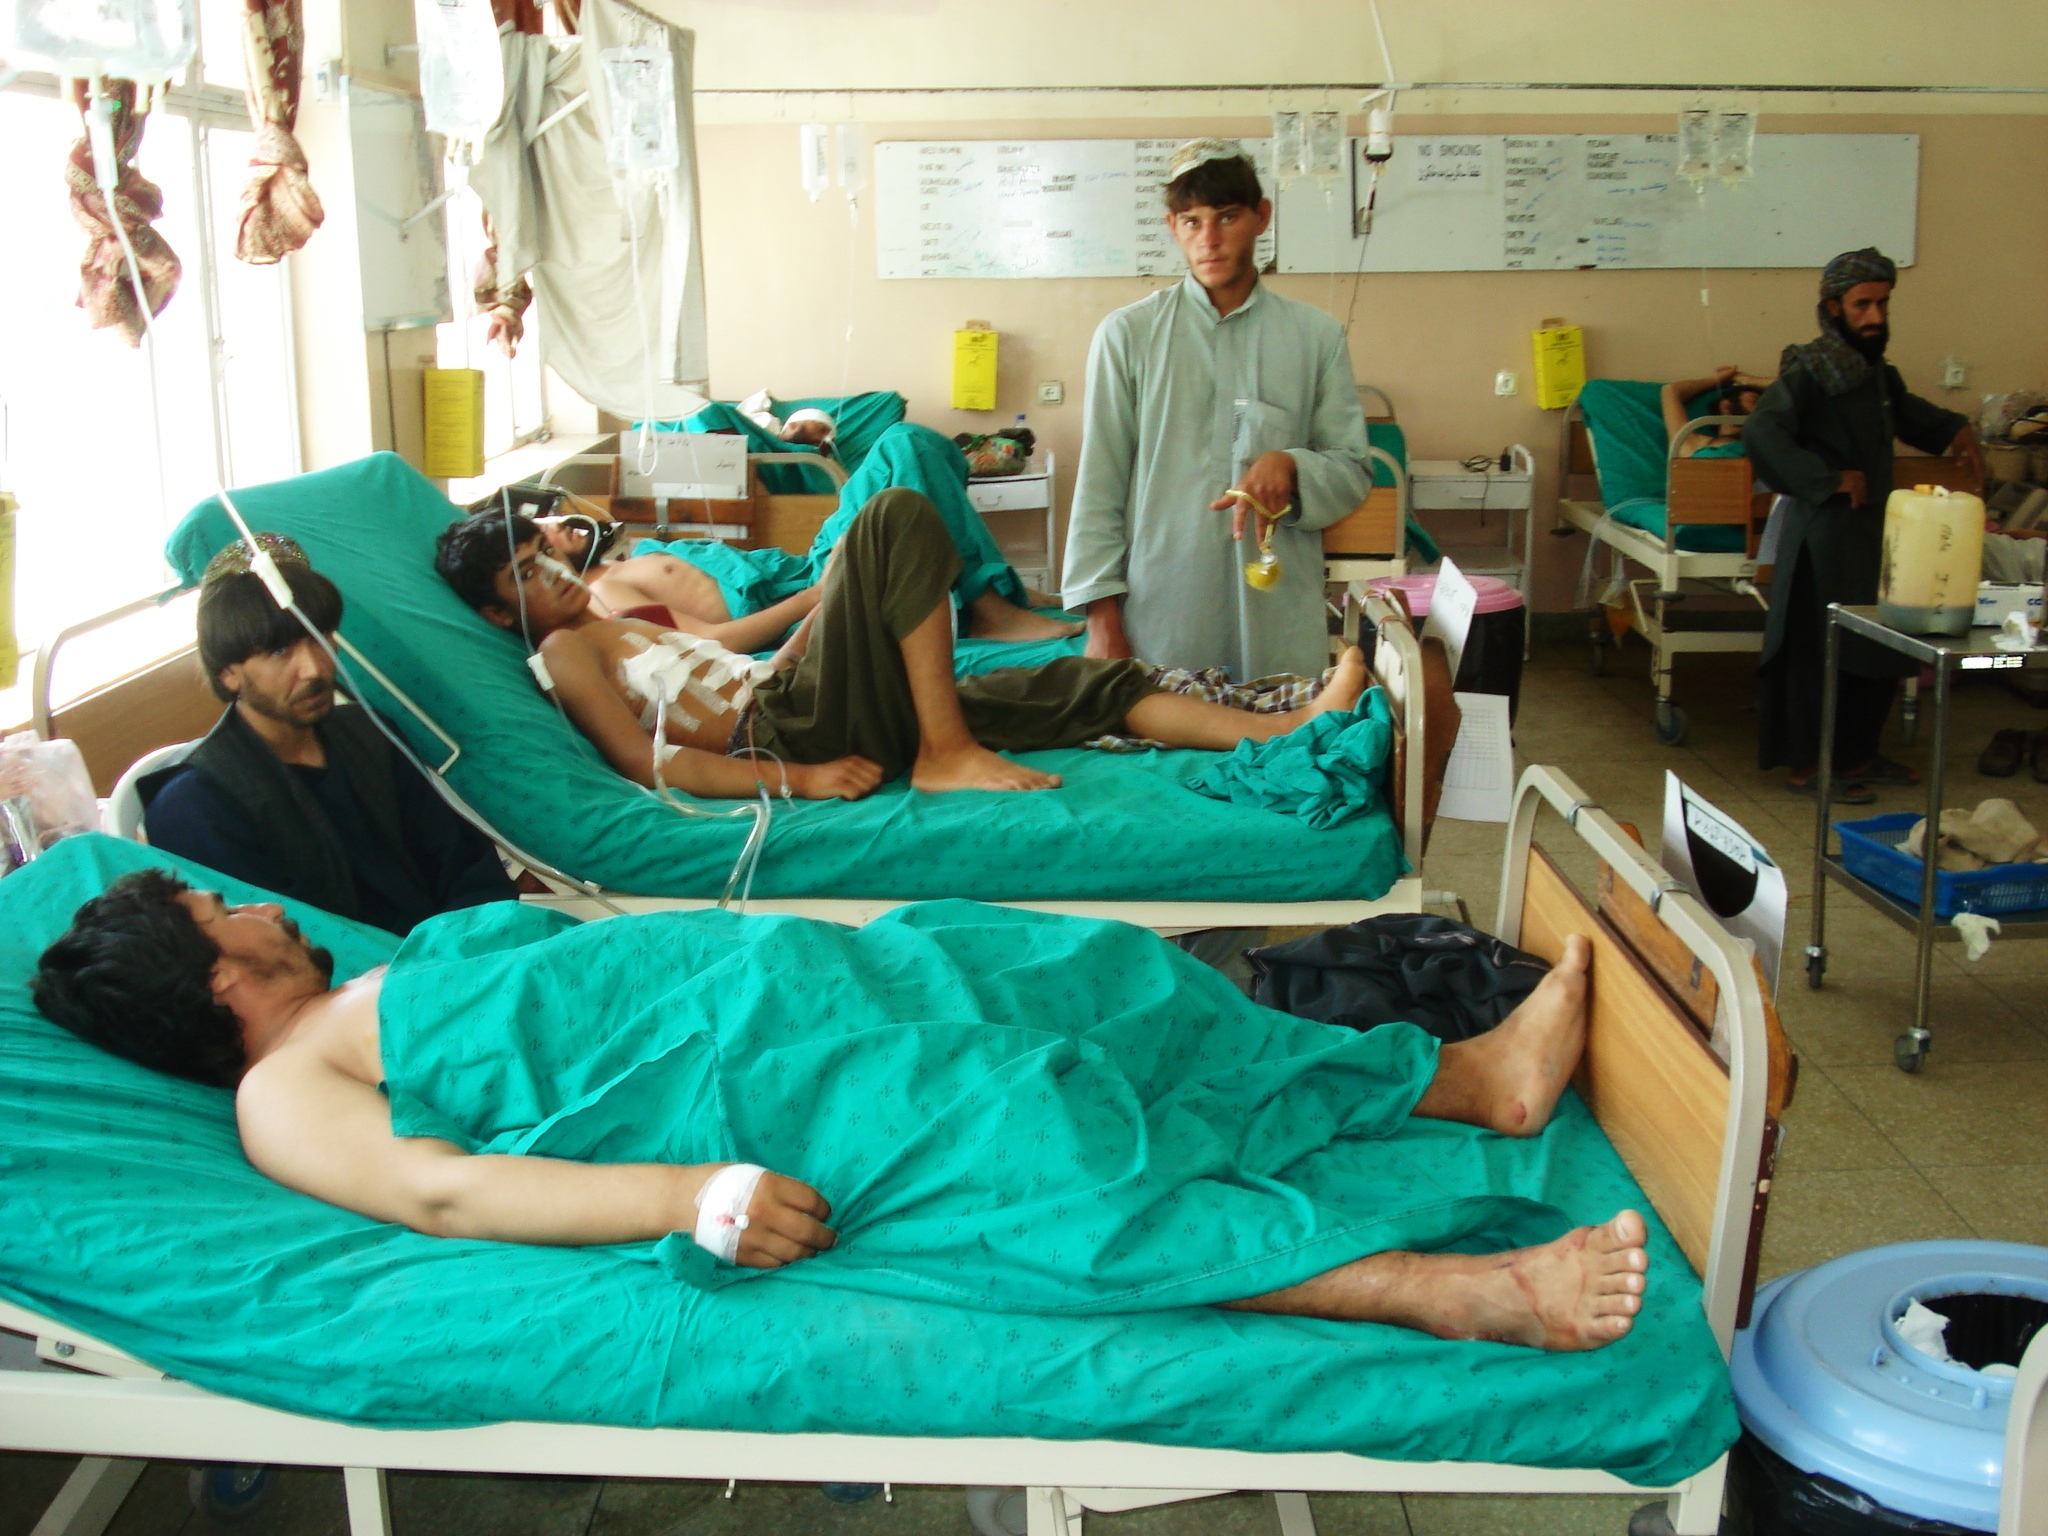 Wounded men in a hospital in Kandahar